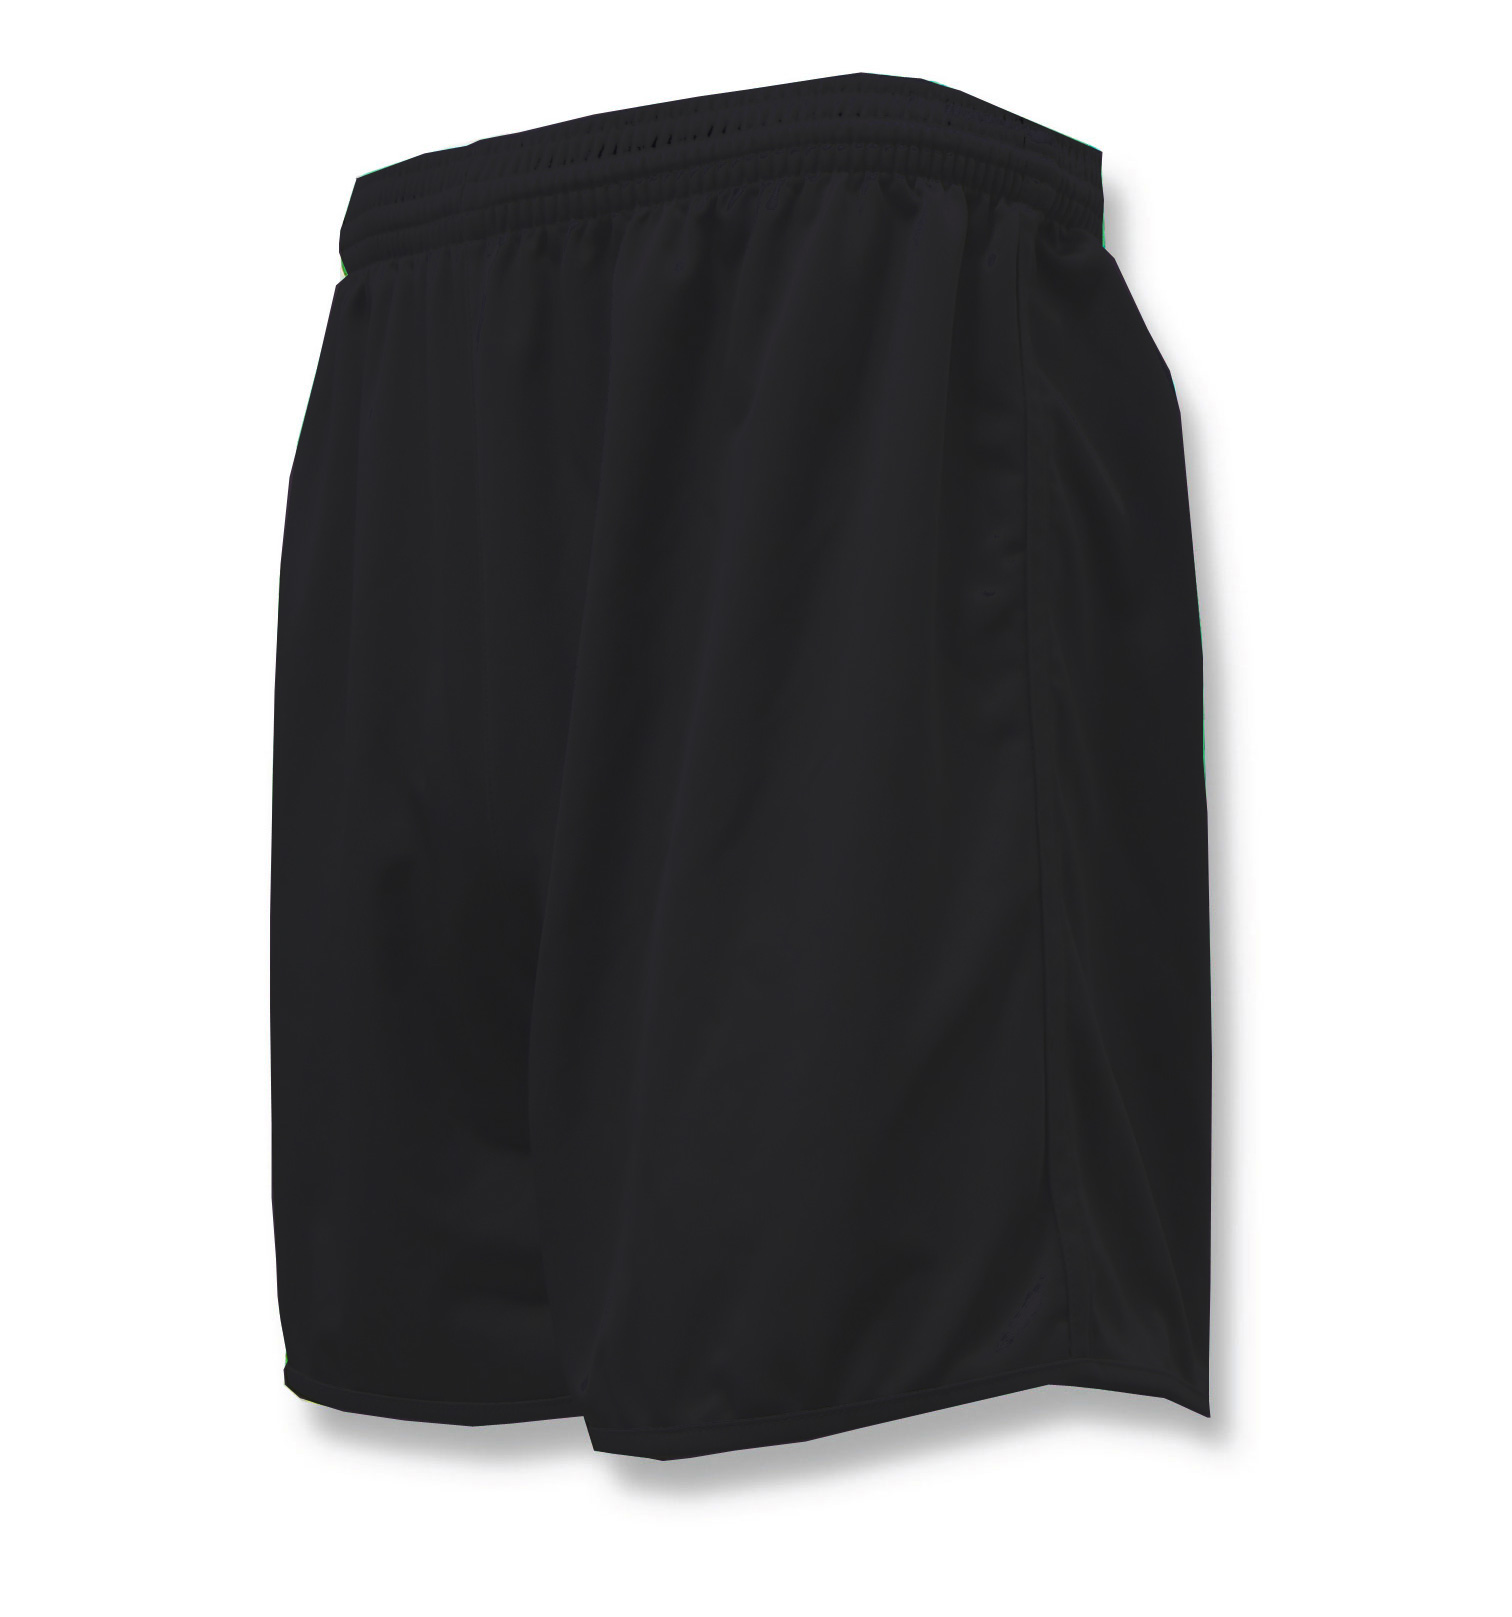 Bravo soccer shorts in black by Code Four Athletics